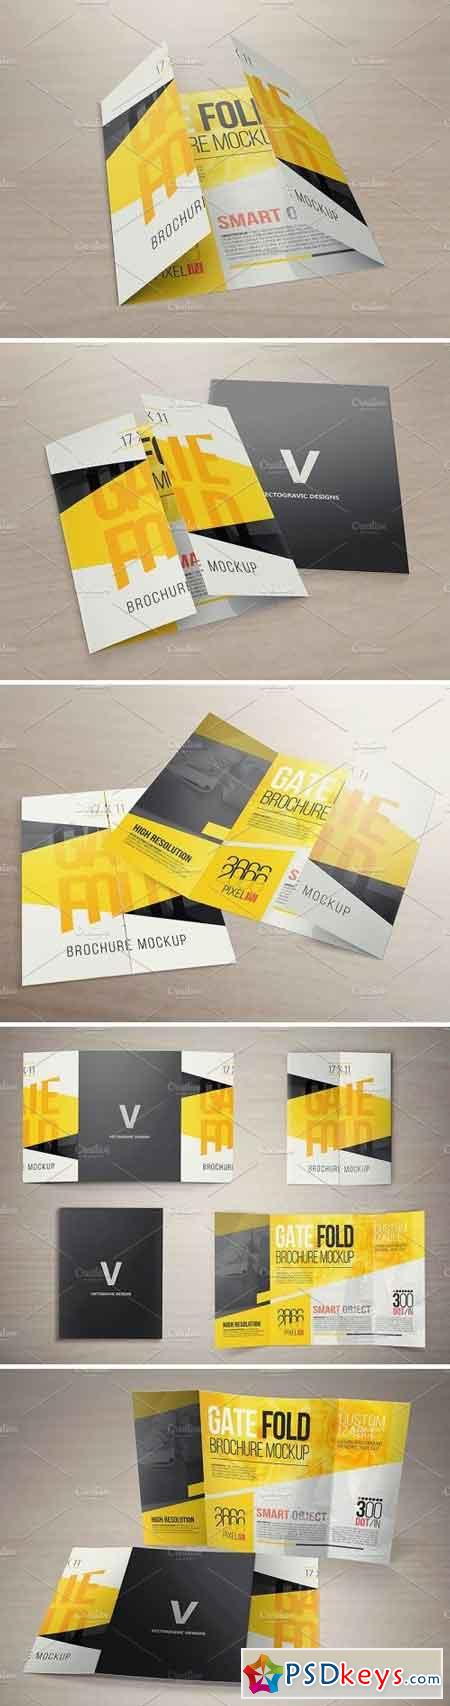 X  Gate Fold Brochure Mockups   Free Download Photoshop